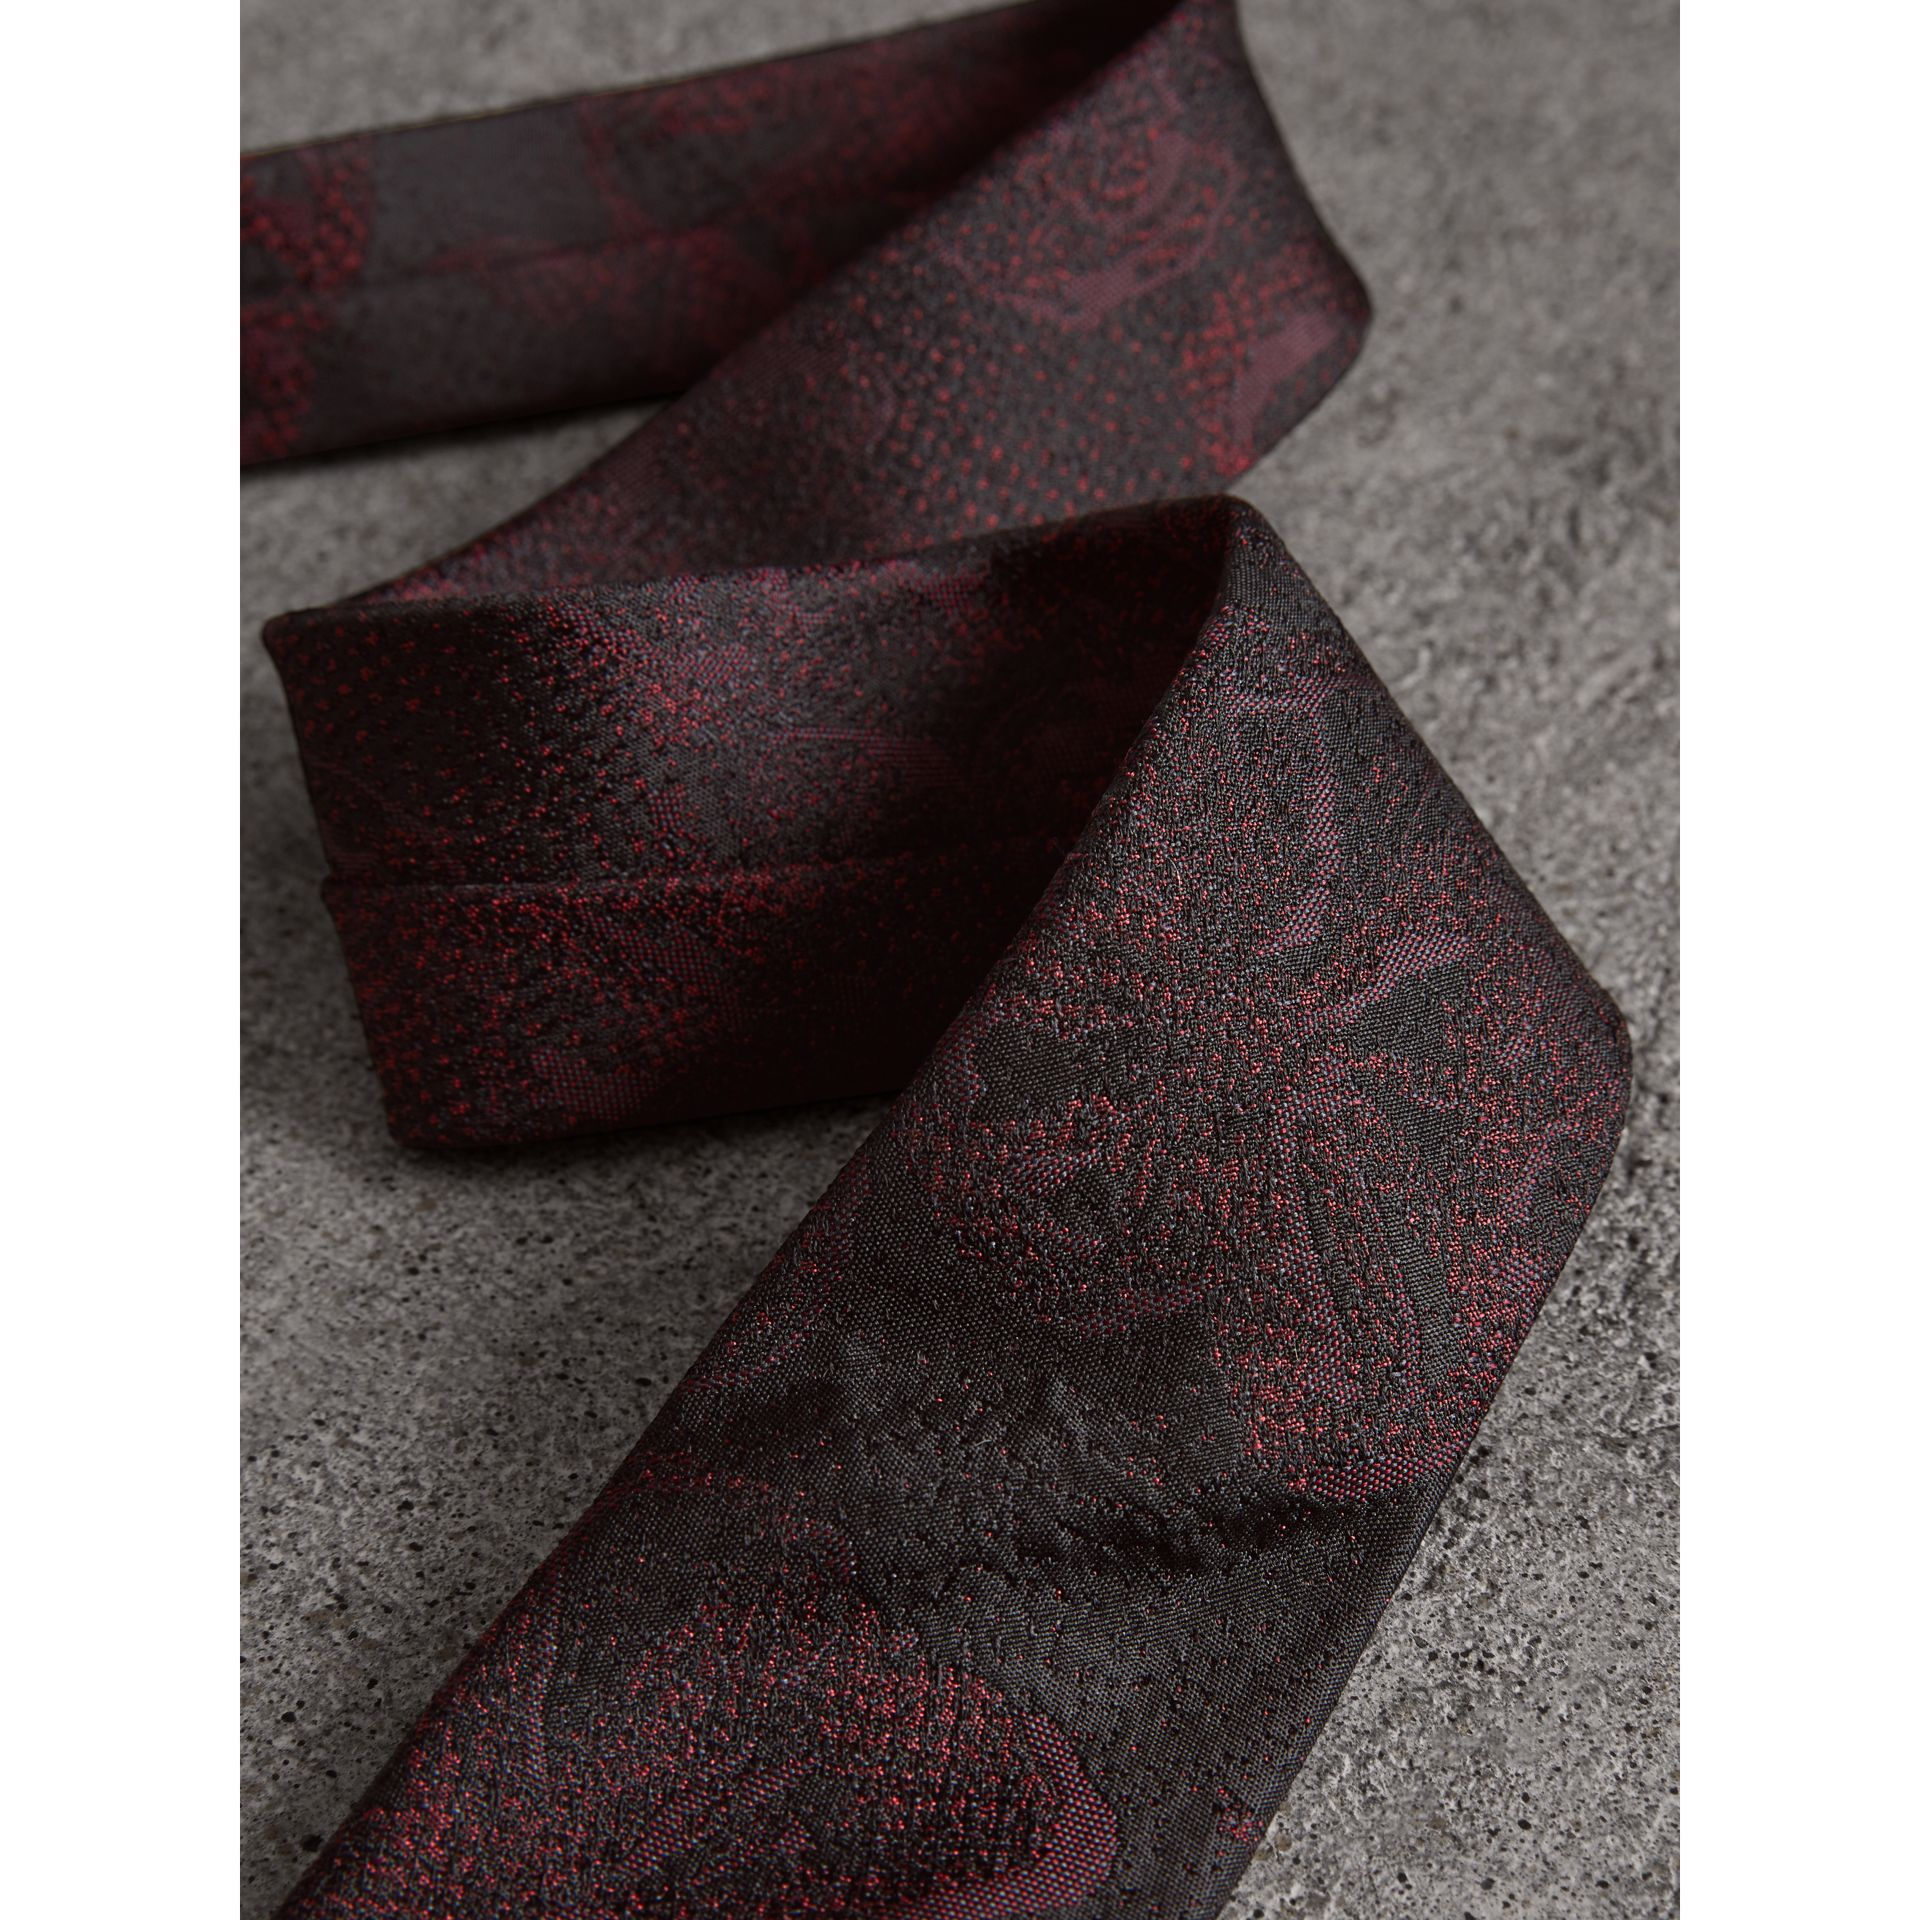 Slim Cut Floral Jacquard Silk Tie in Deep Claret - Men | Burberry - gallery image 1